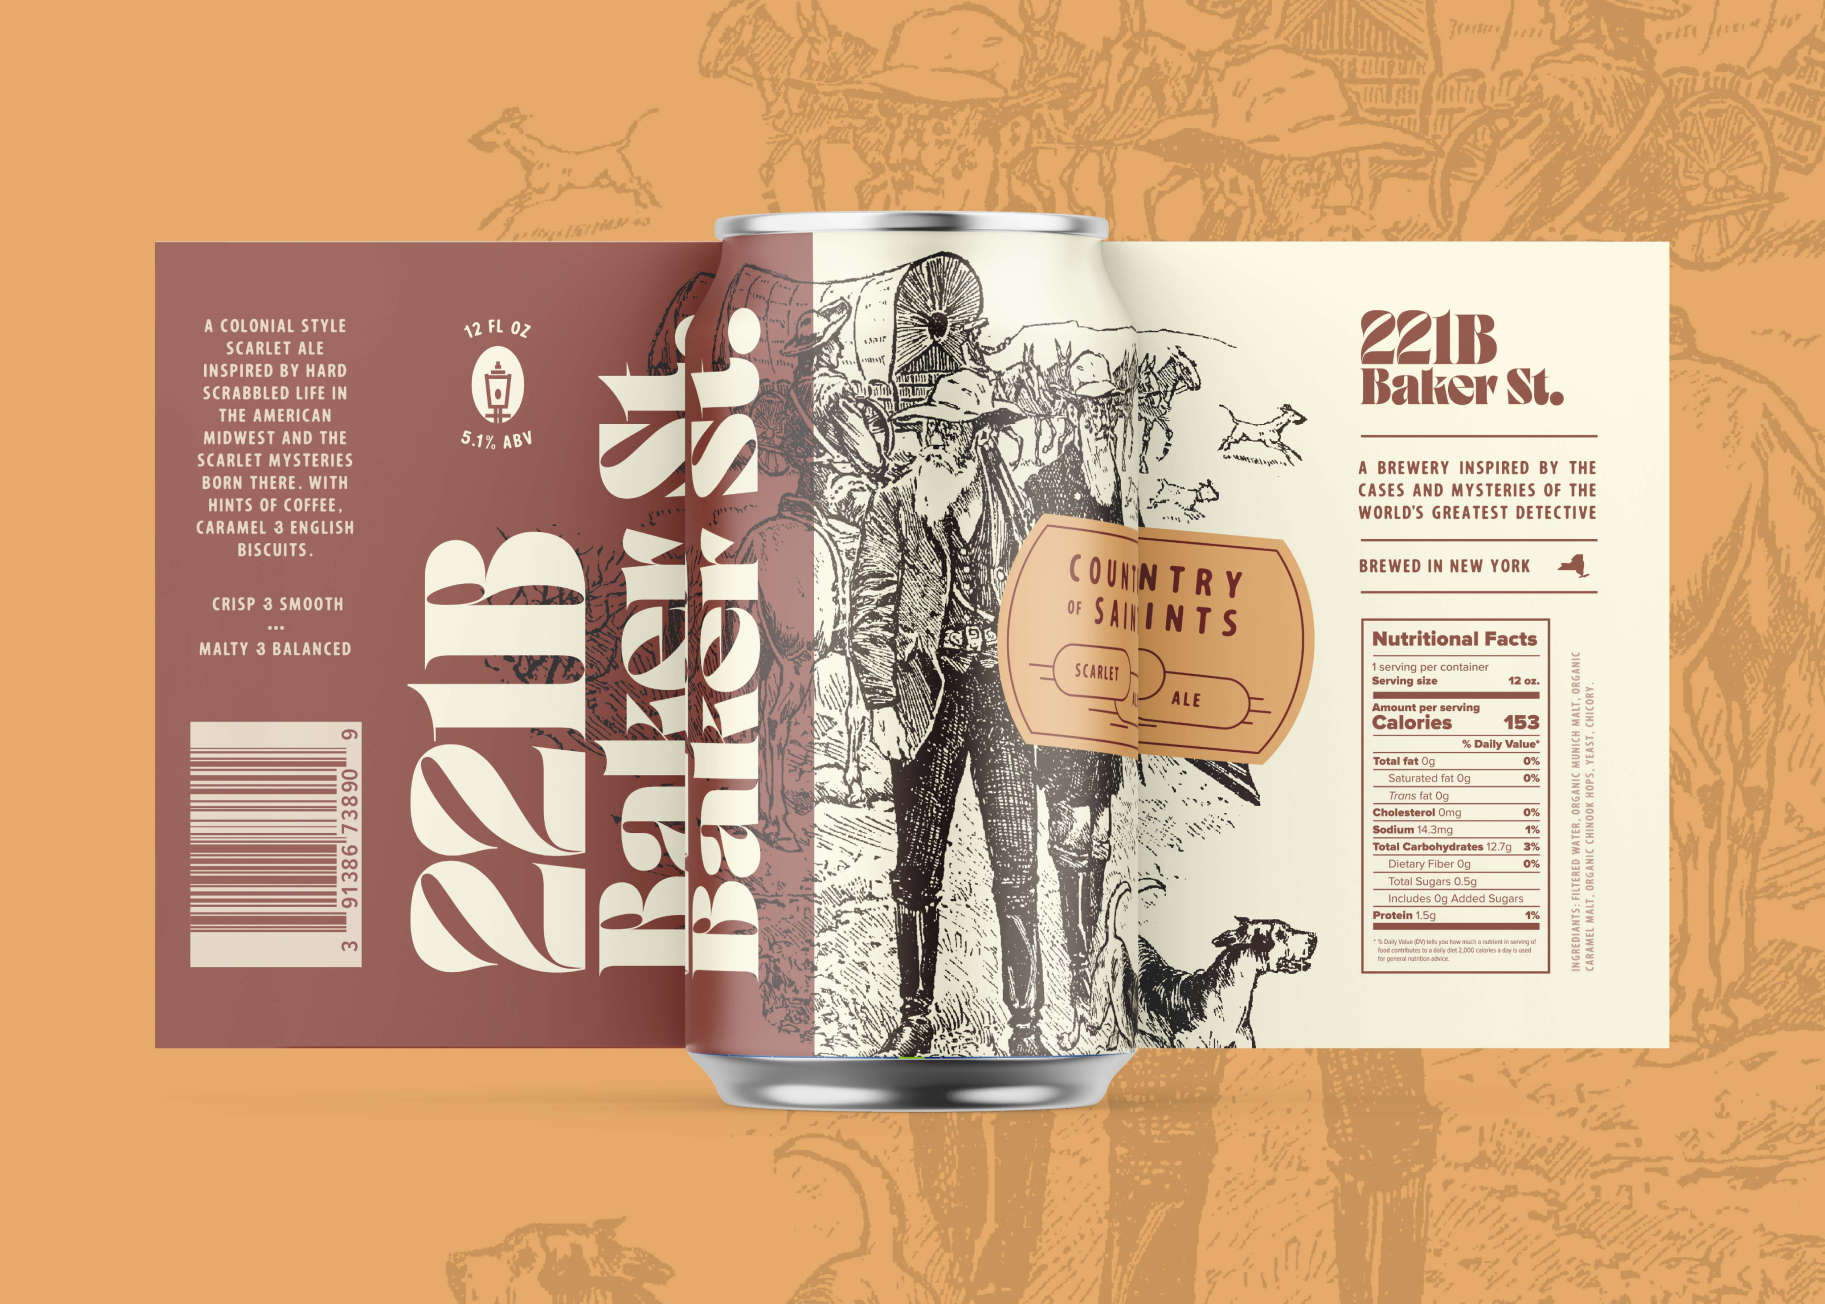 Can design for Country of Saints Scarlet Ale